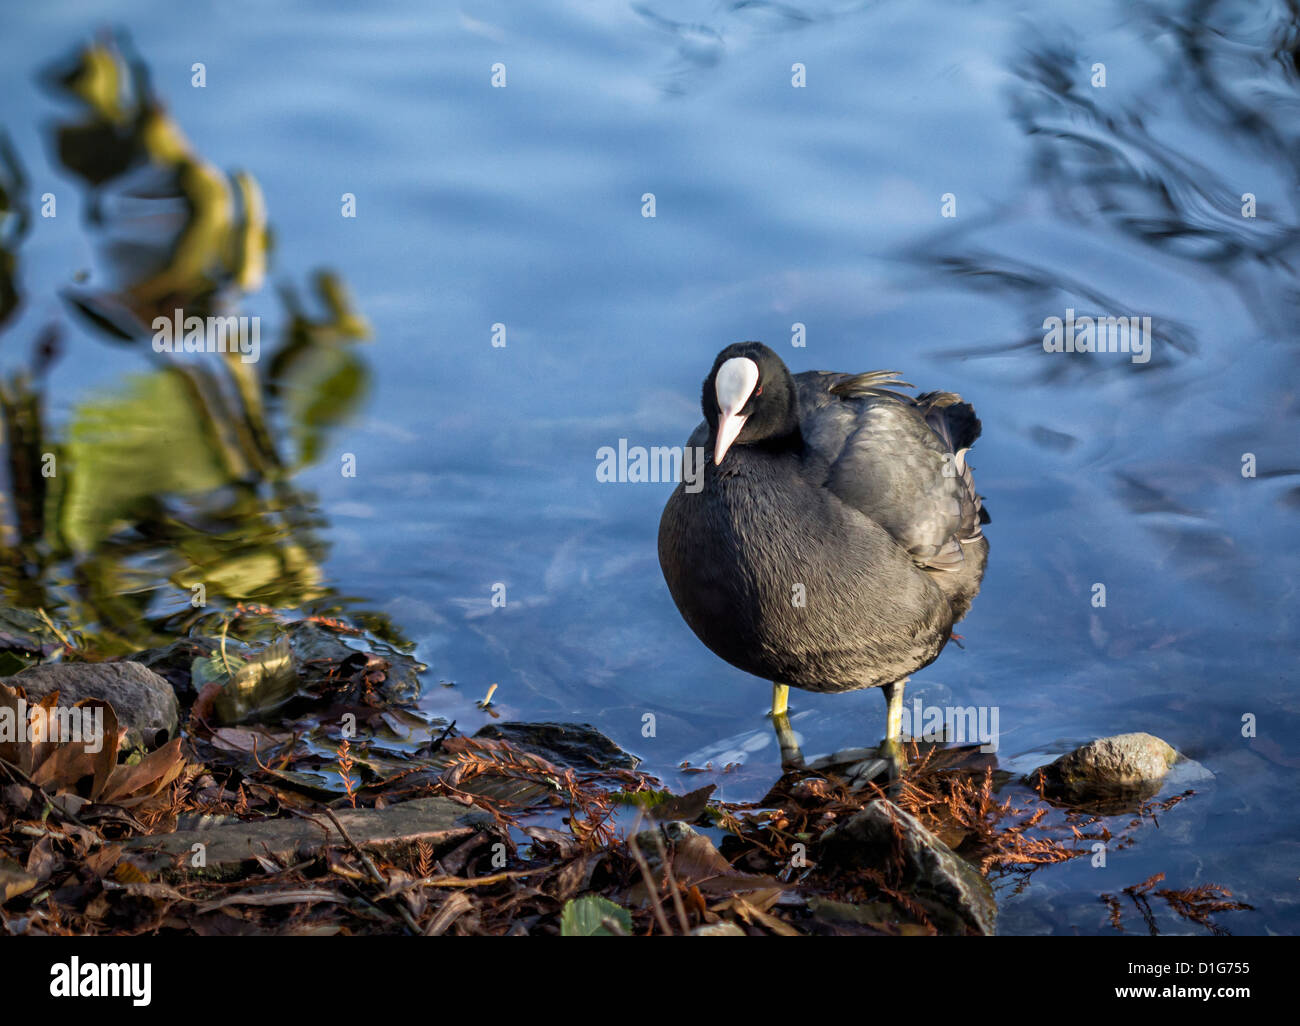 A coot (Fulica atra) wading in the lake at Kew Gardens, Surrey, UK - Stock Image